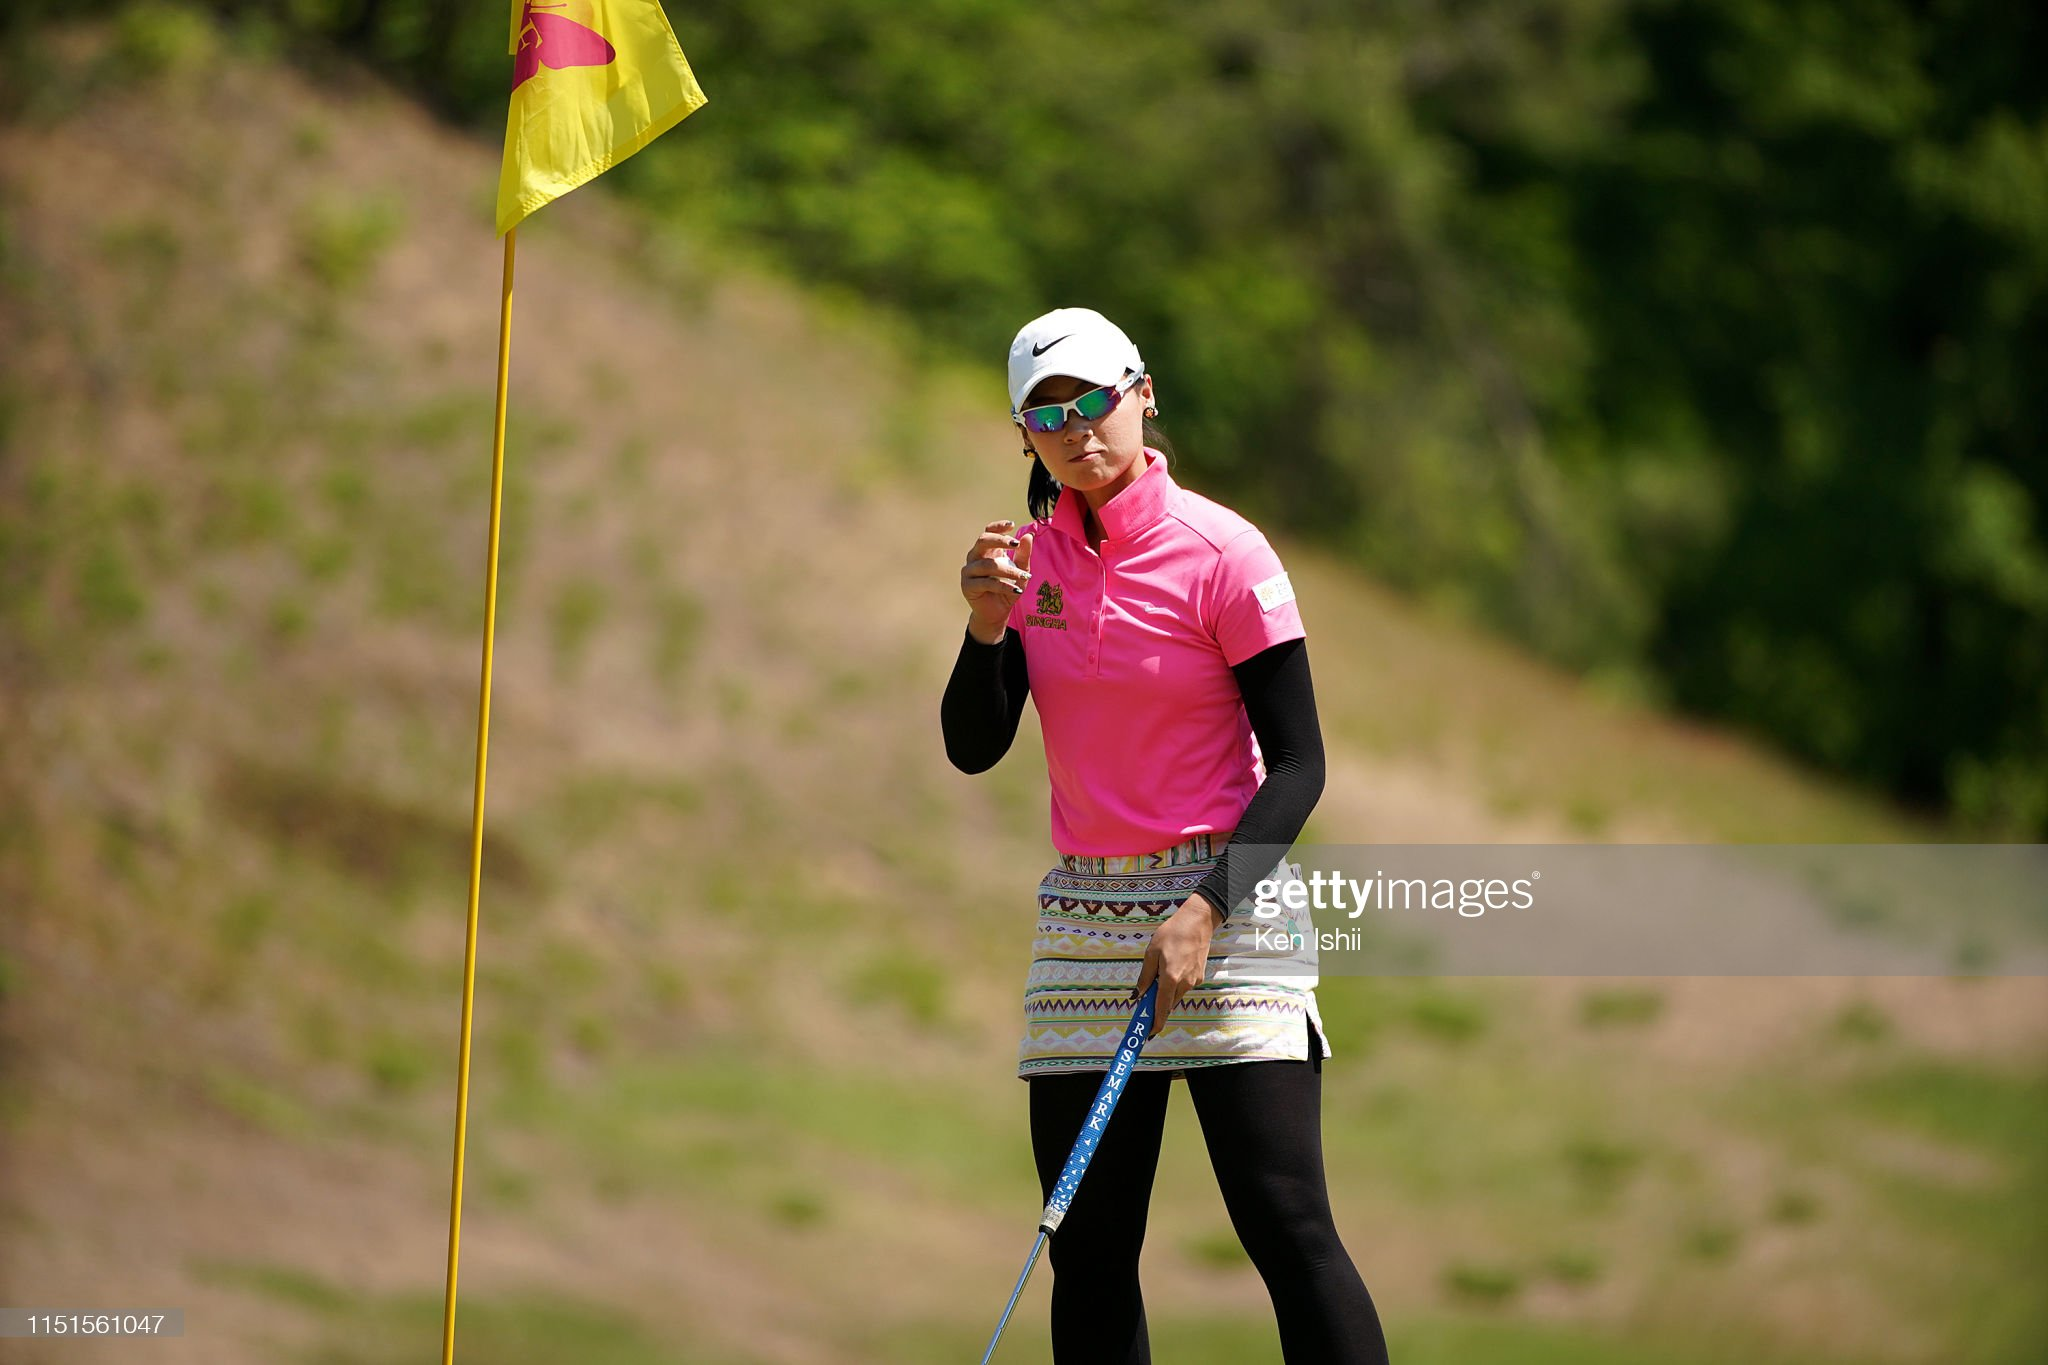 https://media.gettyimages.com/photos/nook-sukapan-of-thailand-reacts-after-a-putt-on-the-first-green-the-picture-id1151561047?s=2048x2048